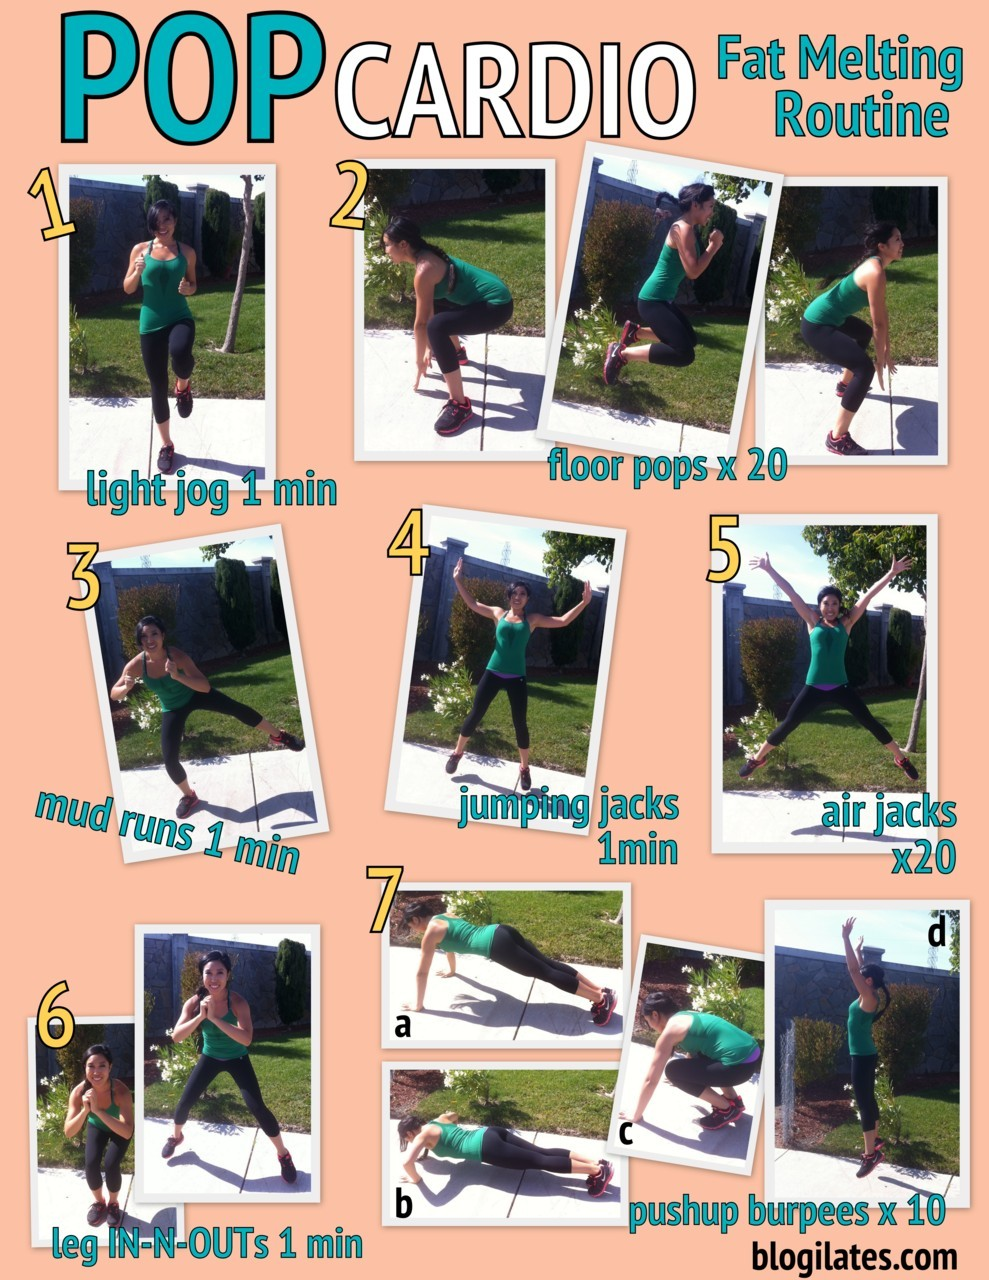 POP CARDIO: Fat Melting Routine PRINTABLE!!! If you want to do this with someone, do it with me! Have fun! Repeat 4x for a full workout. You can calculate how many calories you burned with tools from MyFitnessPal, MyNetDiary, or LoseIt.